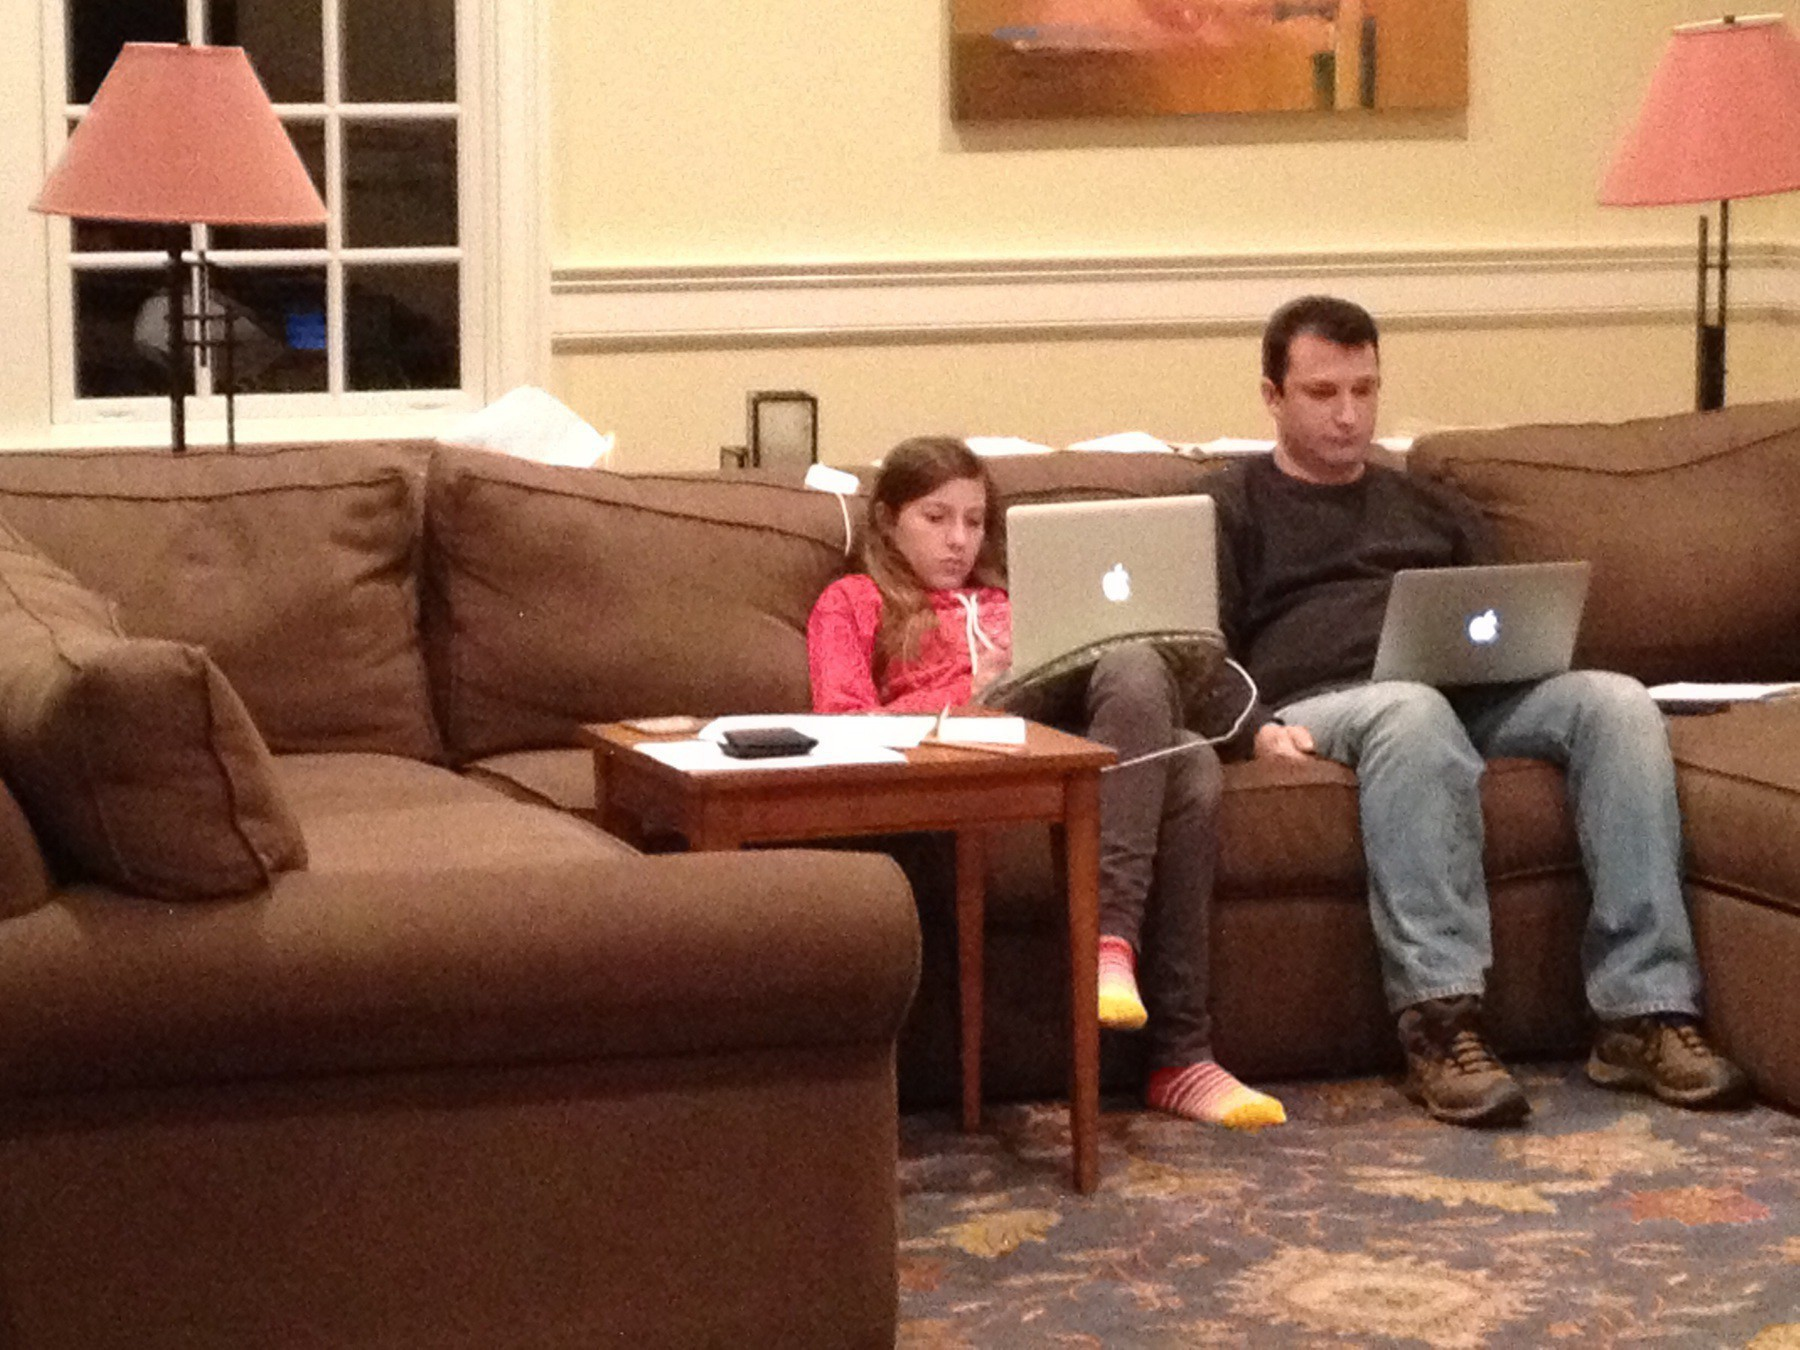 Father and daughter sitting next to each other on a couch. They are both completely focused on their laptops.